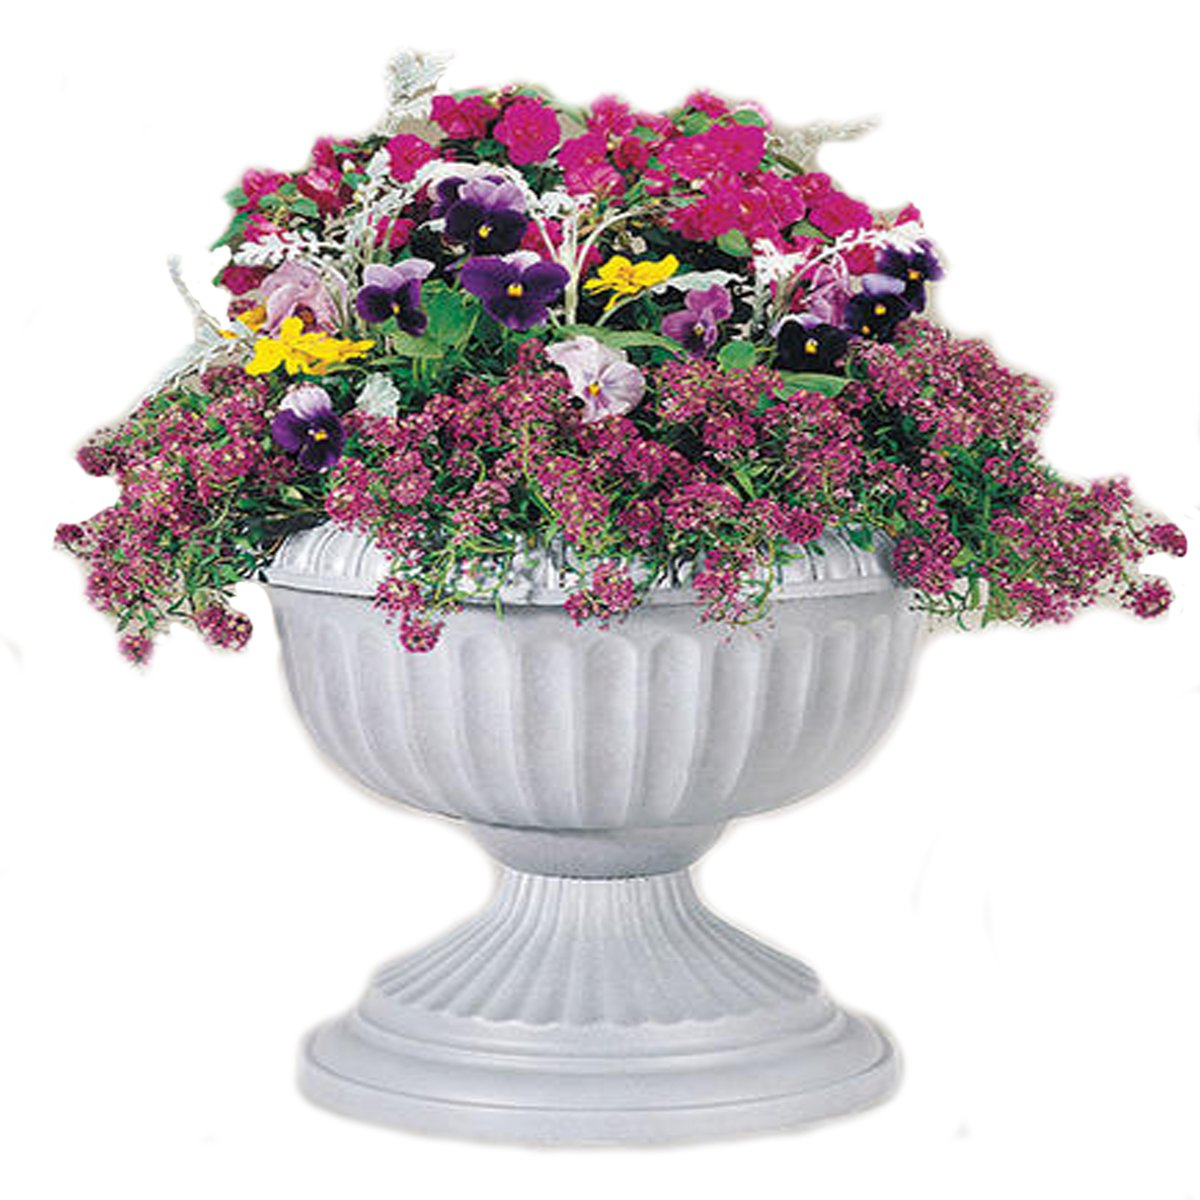 Grecian Urn Planter - UV Resistant Cracking Proof Lightweight NO FADE - 18'' H x 18'' W x 14.5'' D (White)